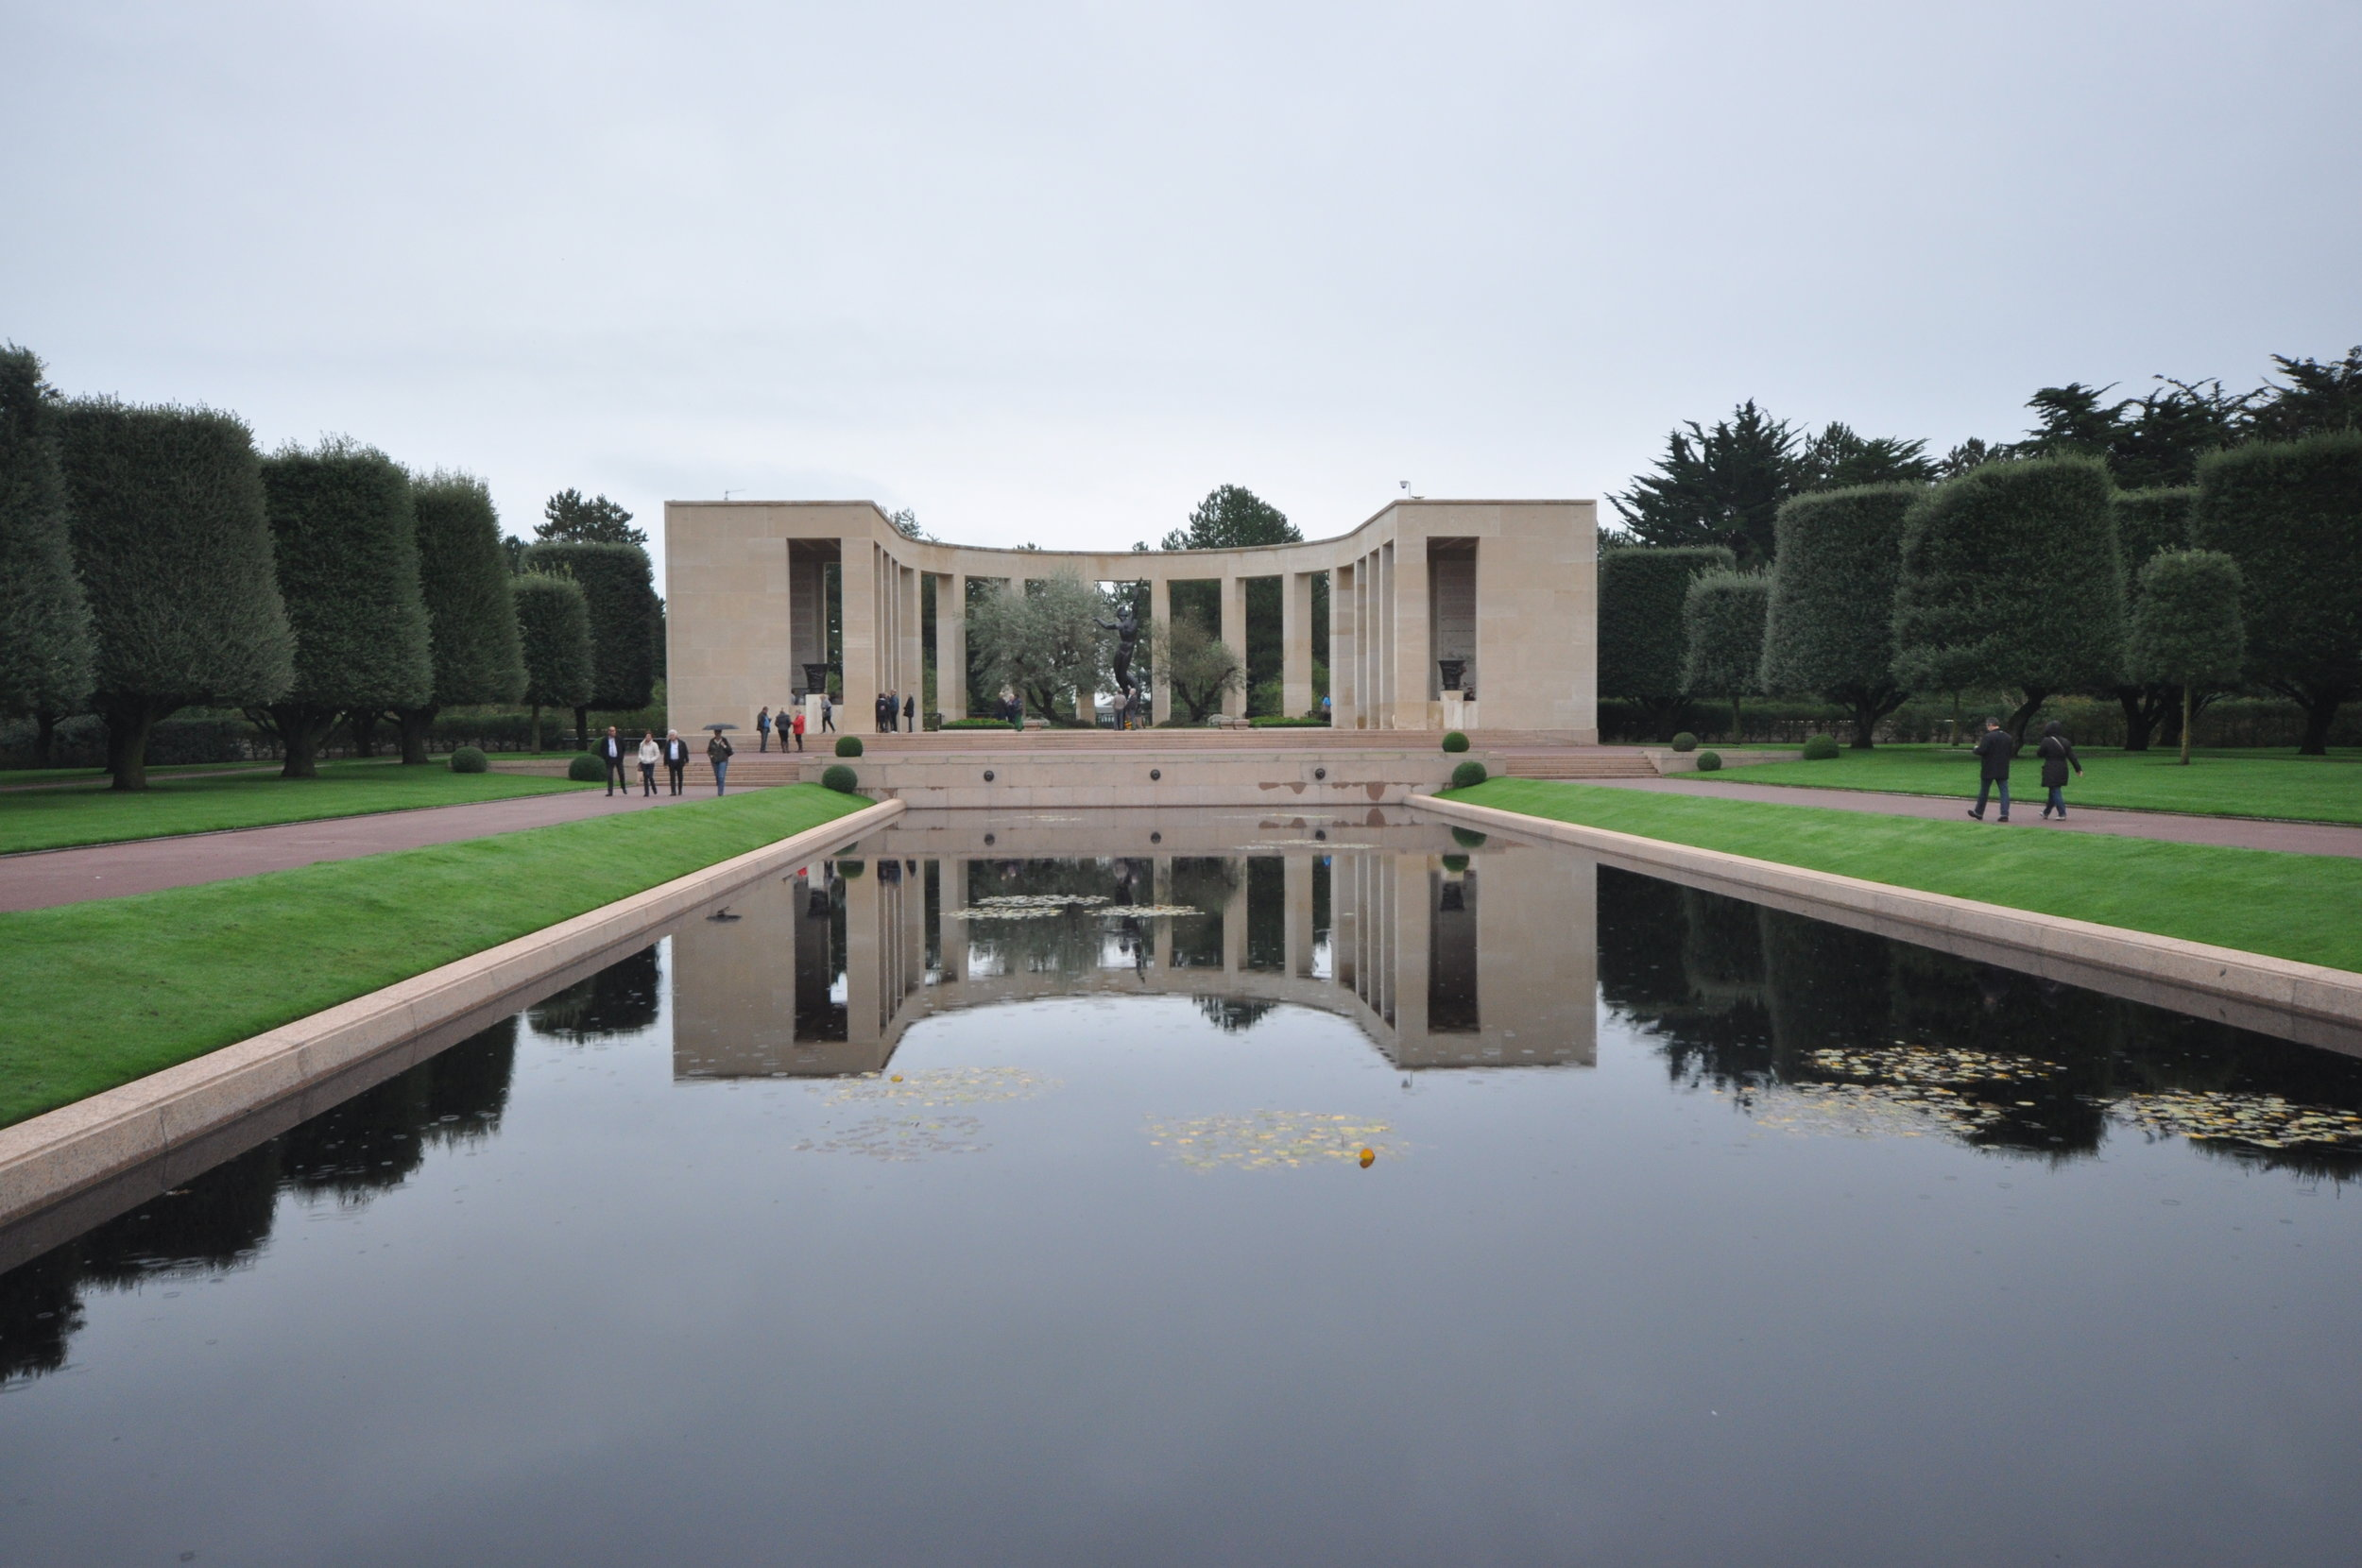 The Normandy American Cemetary